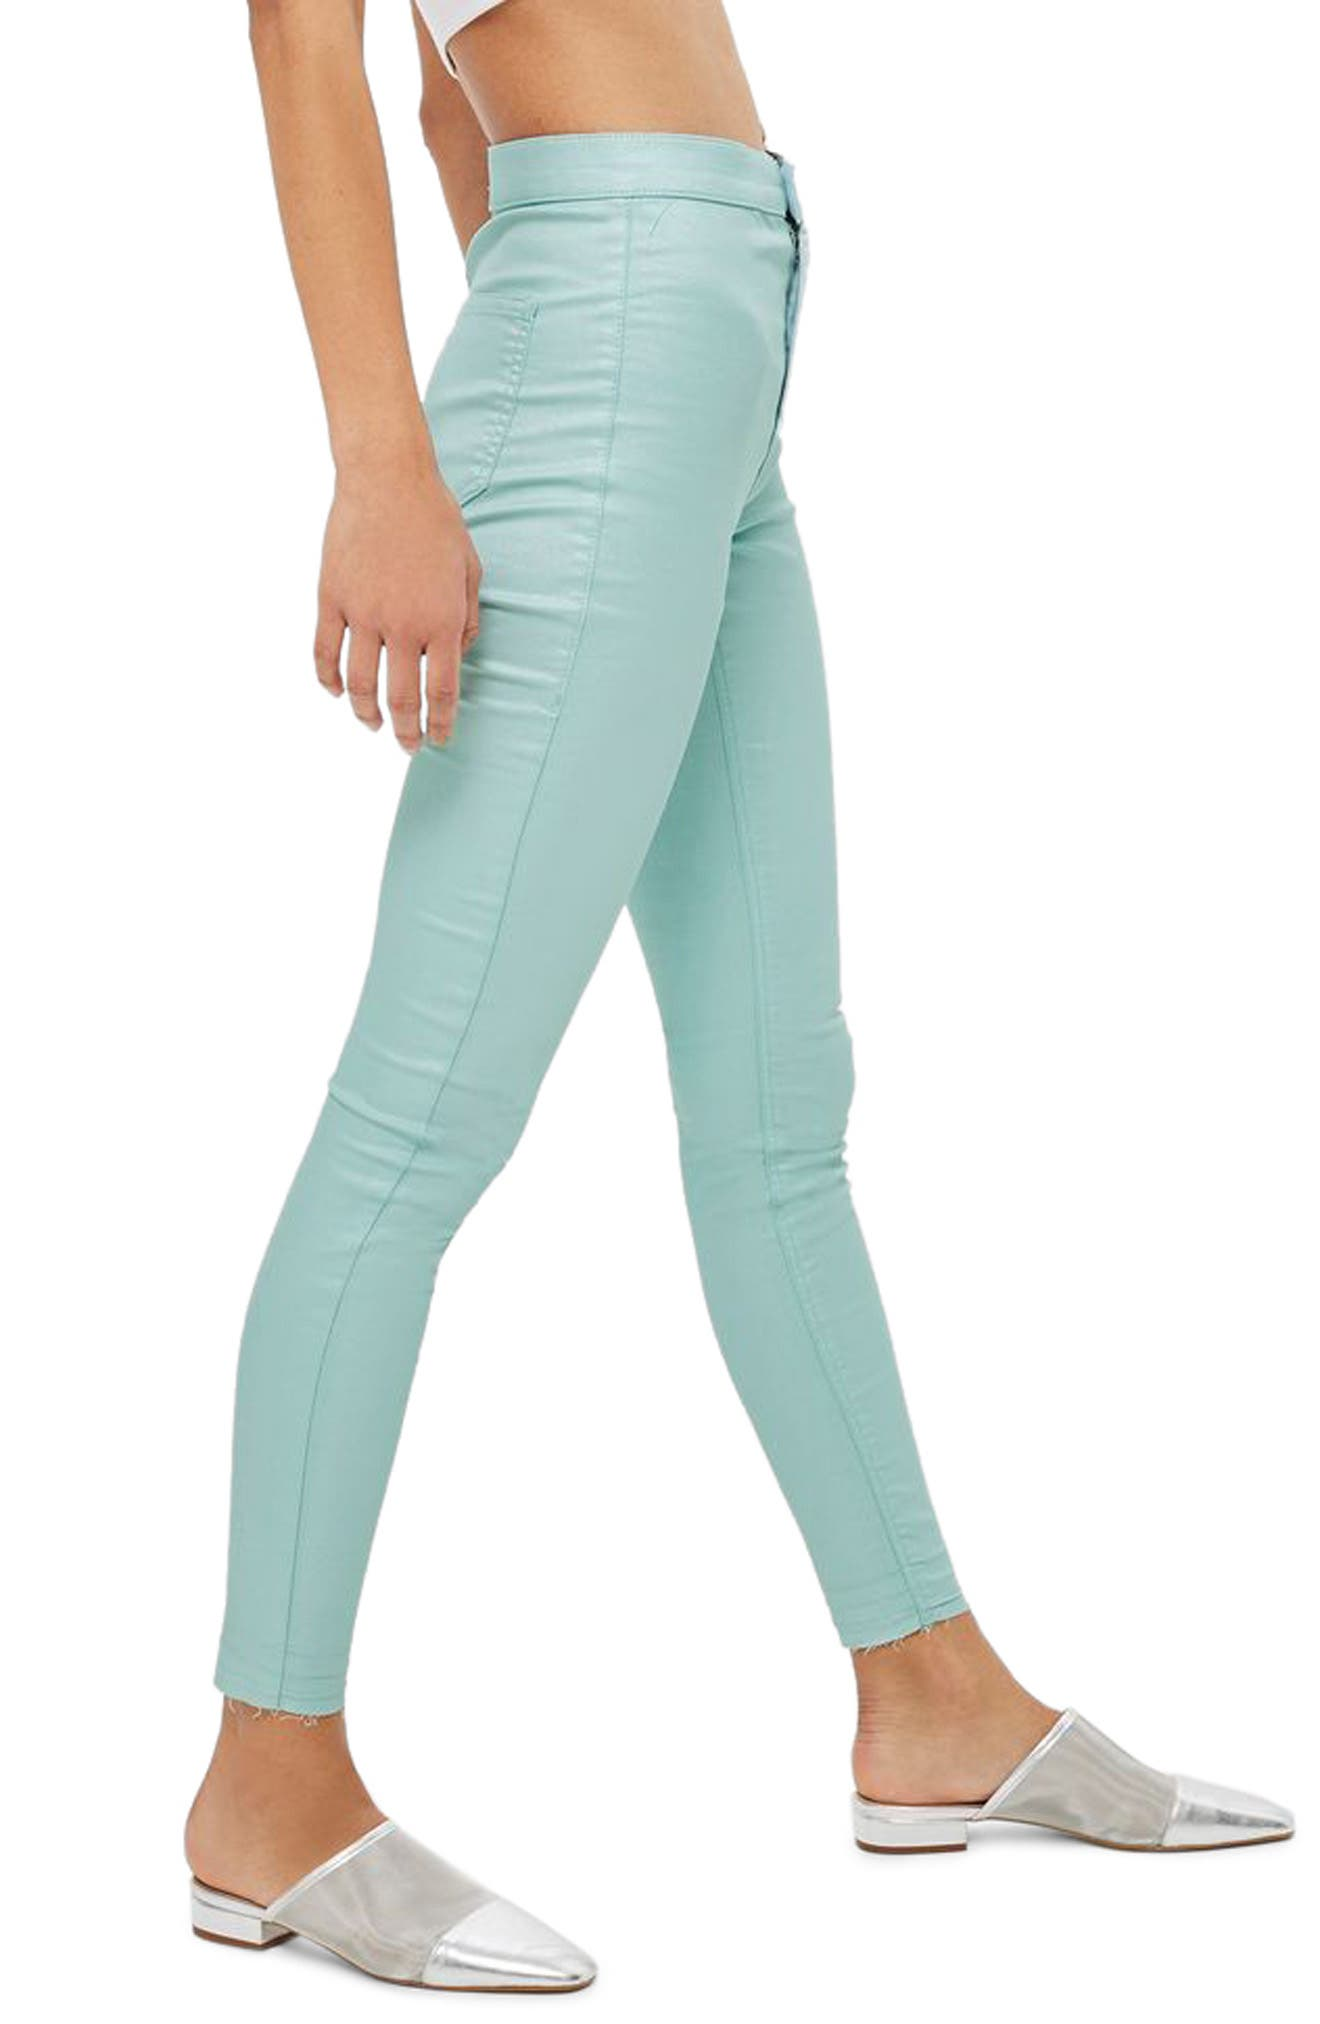 Alternate Image 1 Selected - Topshop Joni Shimmer Skinny Jeans